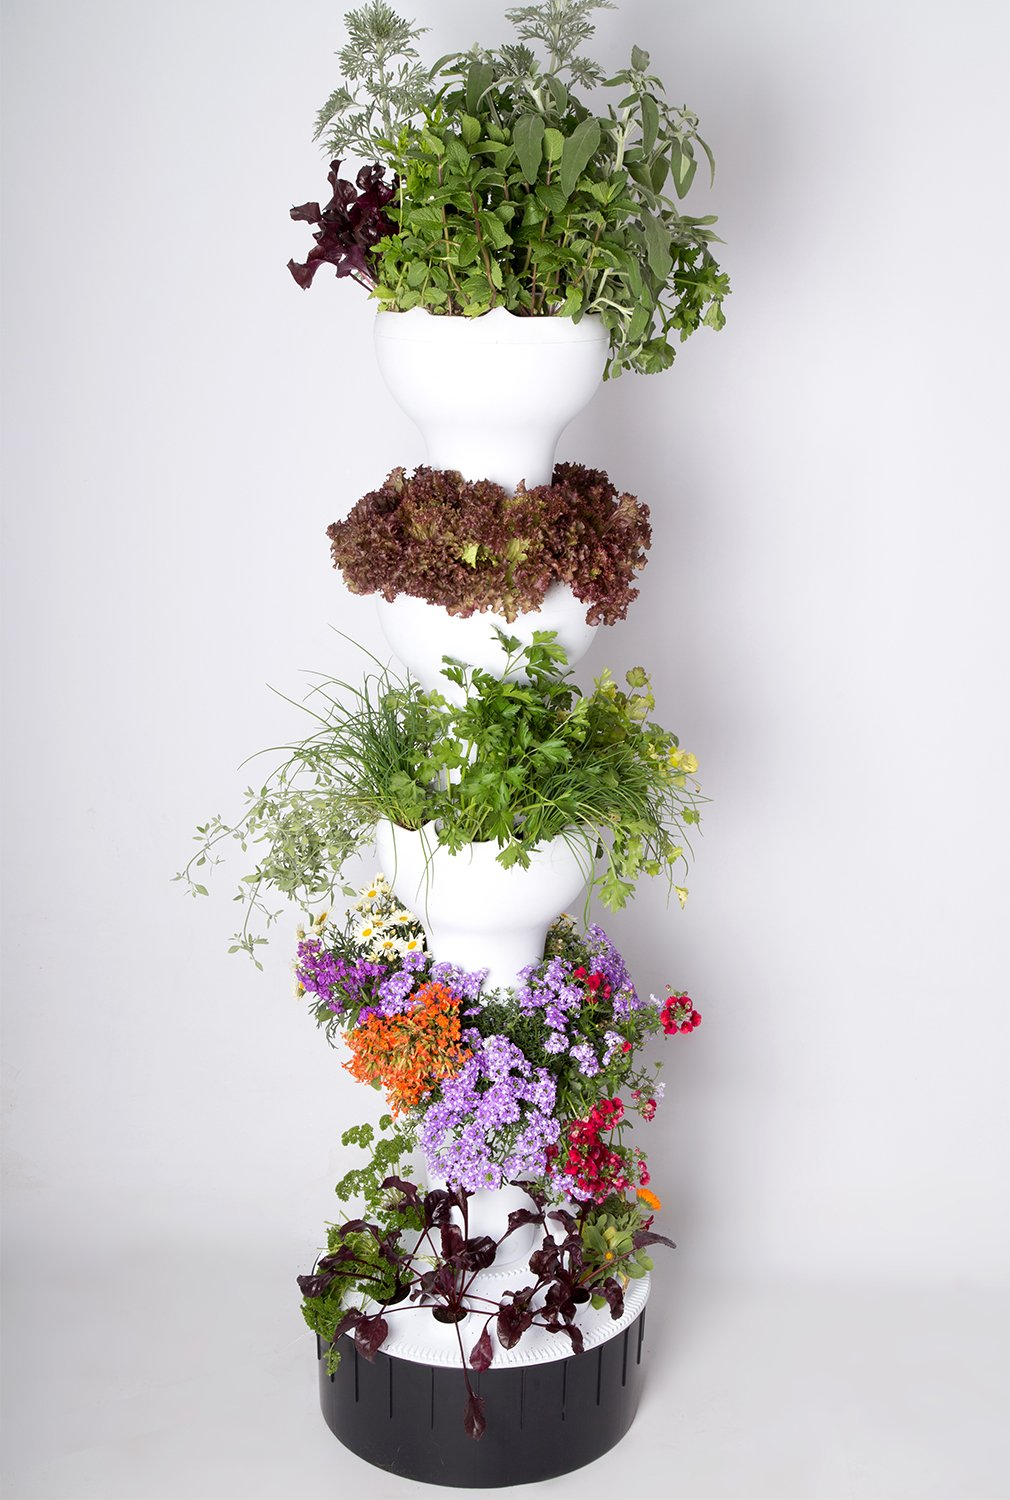 Foody Tower - Stacking Vertical Garden - Soil in Growing Pods & Hydroponic in Reservoir - Productive and Attractive